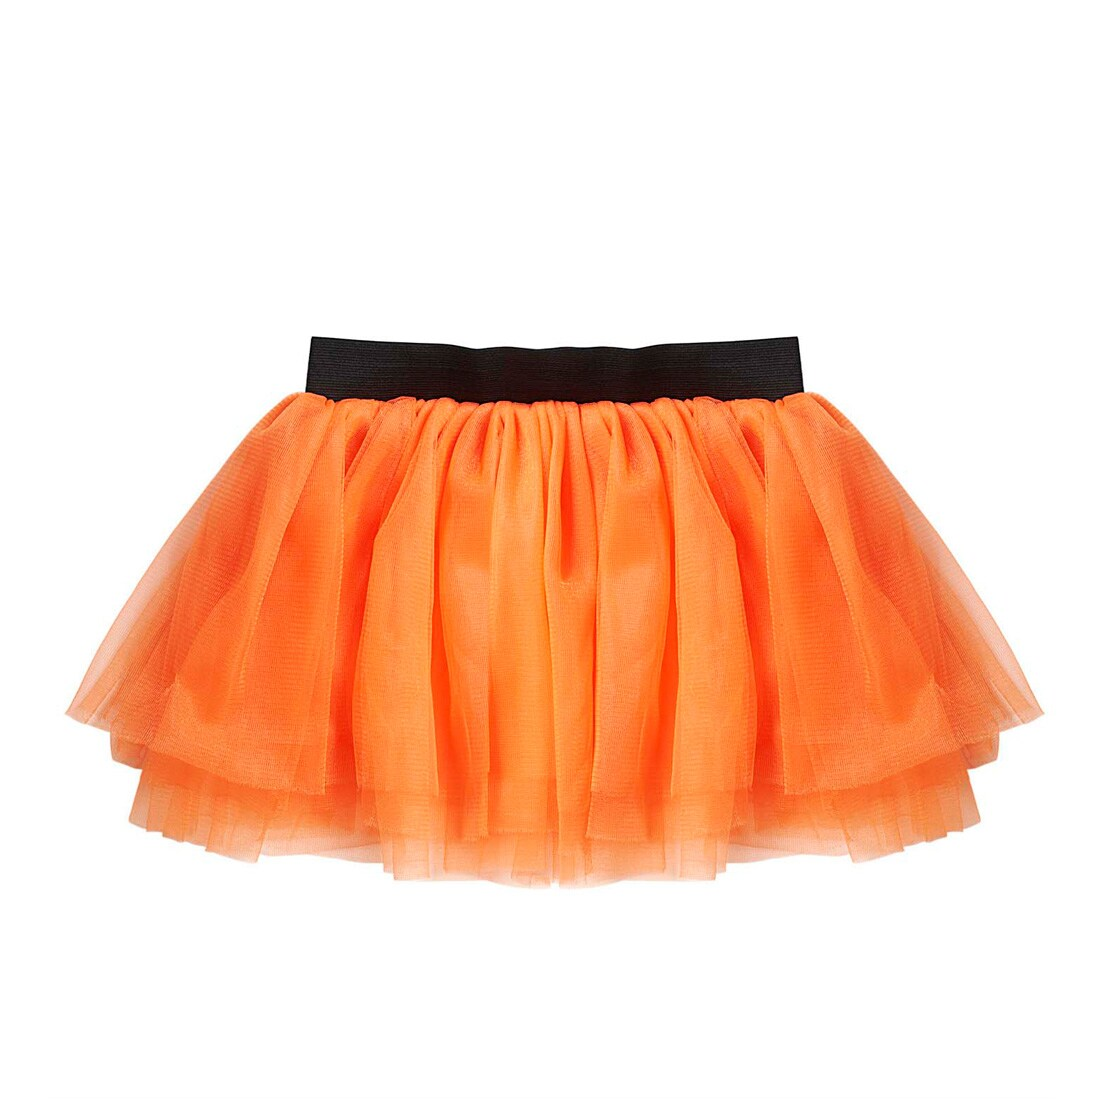 kurzer t llrock neon t t rock orange t ll petticoat 7 99. Black Bedroom Furniture Sets. Home Design Ideas